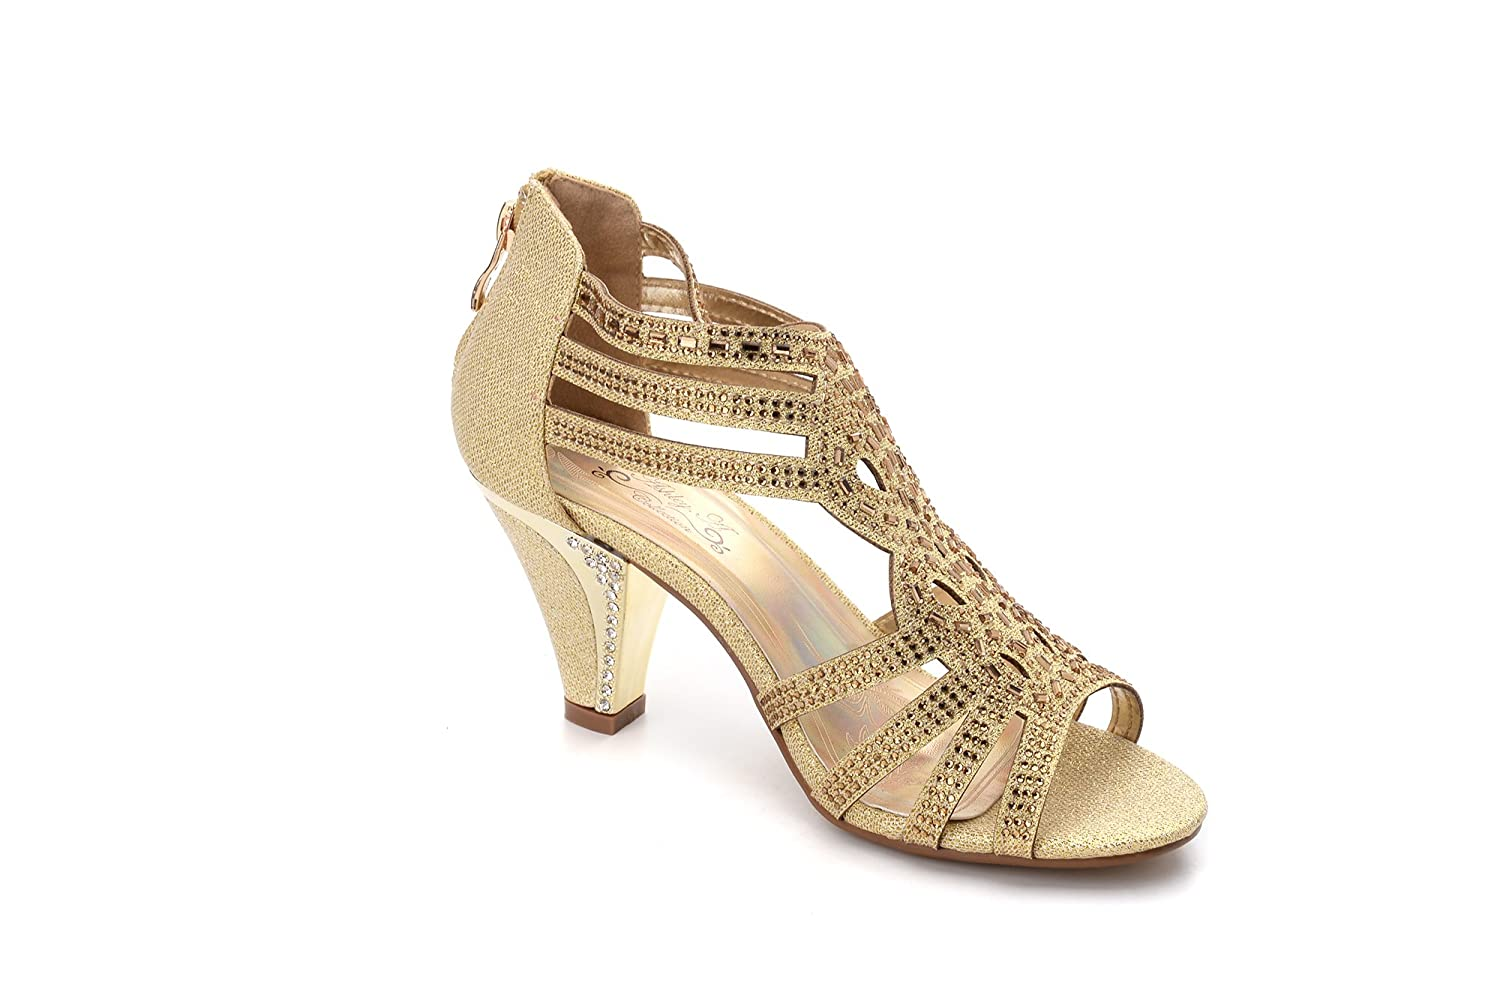 322fc5e66512b Ashley A Collection Women's Lexie Crystal Dress Heels Low Heels Wedding  Shoes KIMI25 Gold 5